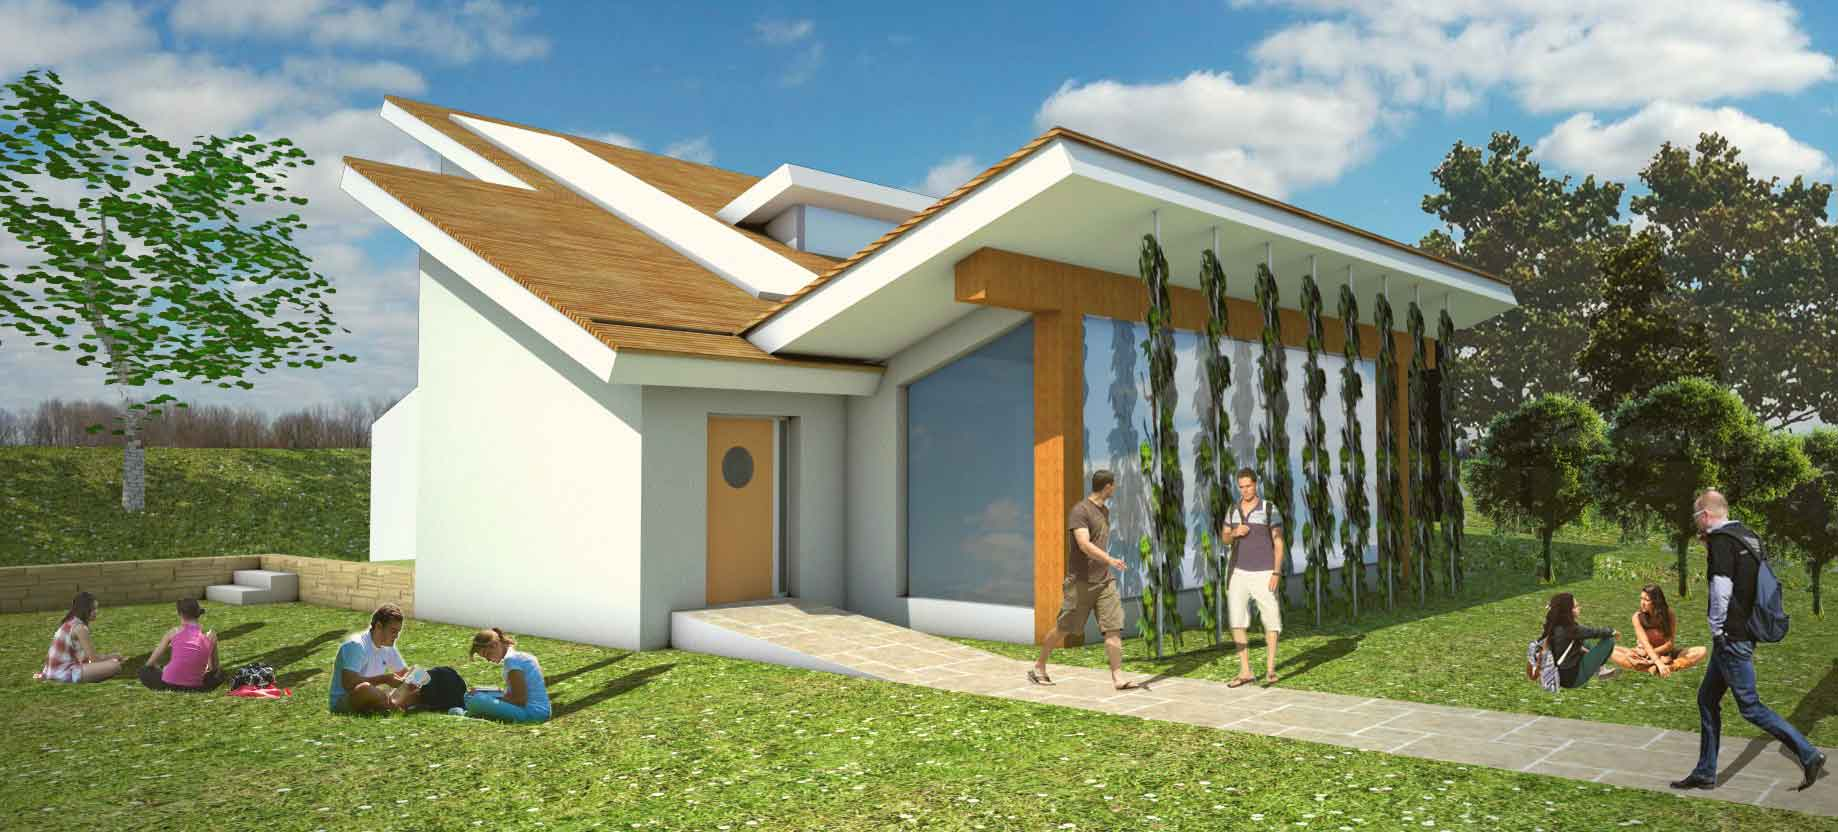 Environmentally friendly classroom design for local school